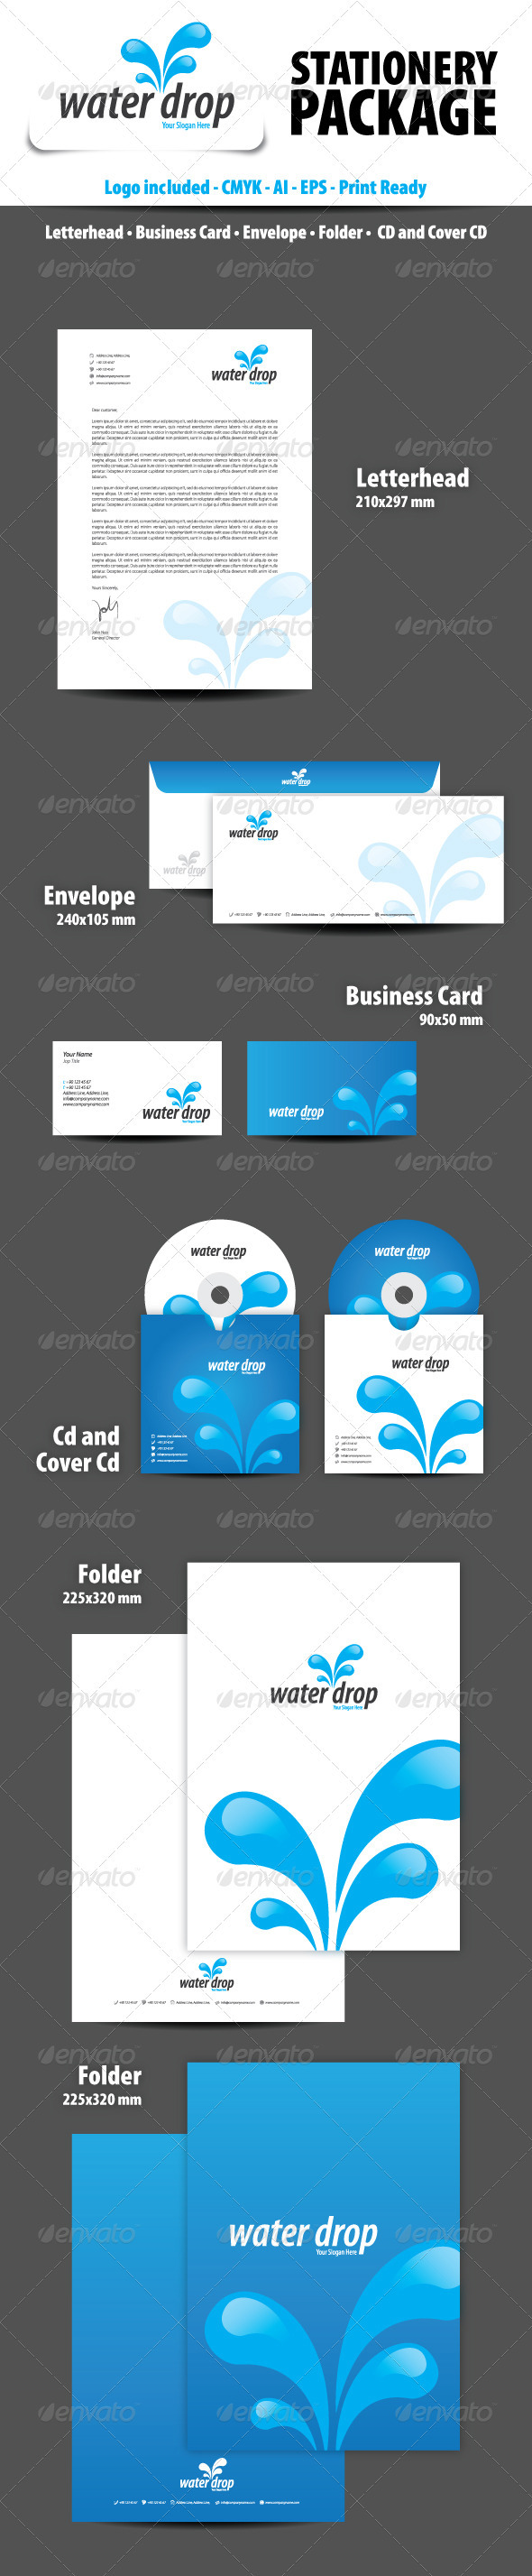 Water Drop Stationery Package - Stationery Print Templates